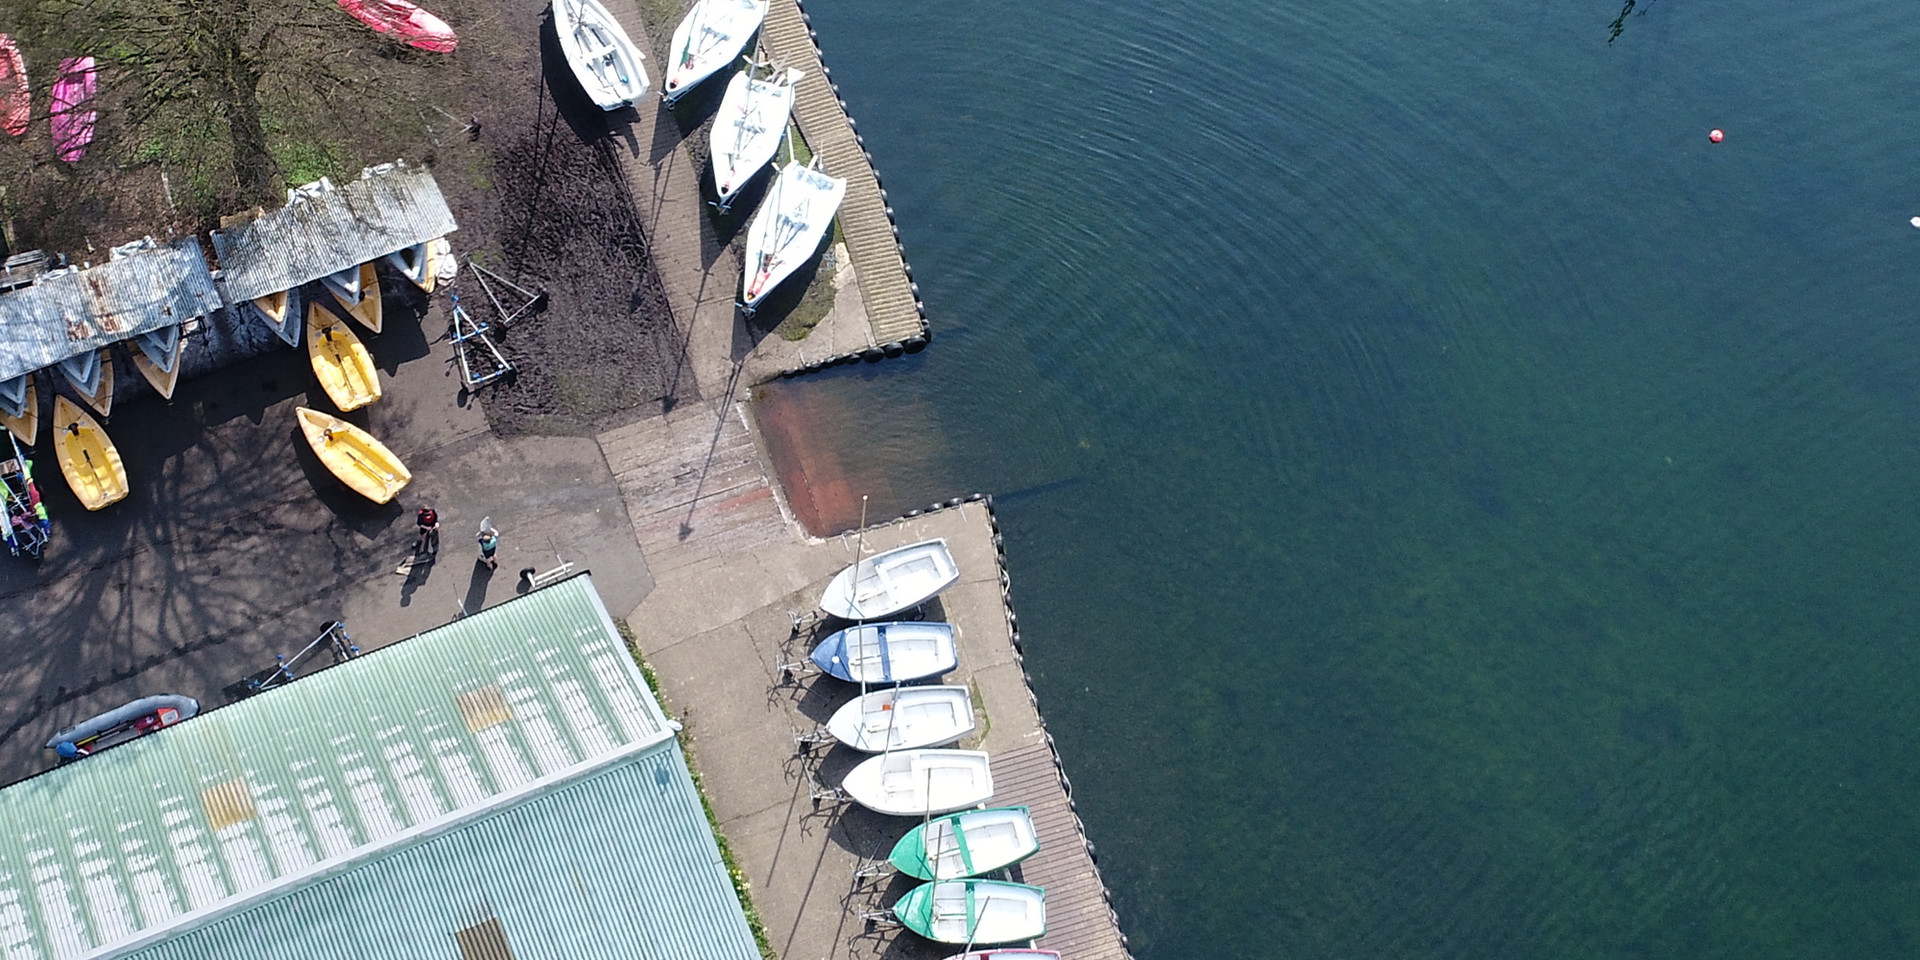 Drone Aerial photo of boats on lake